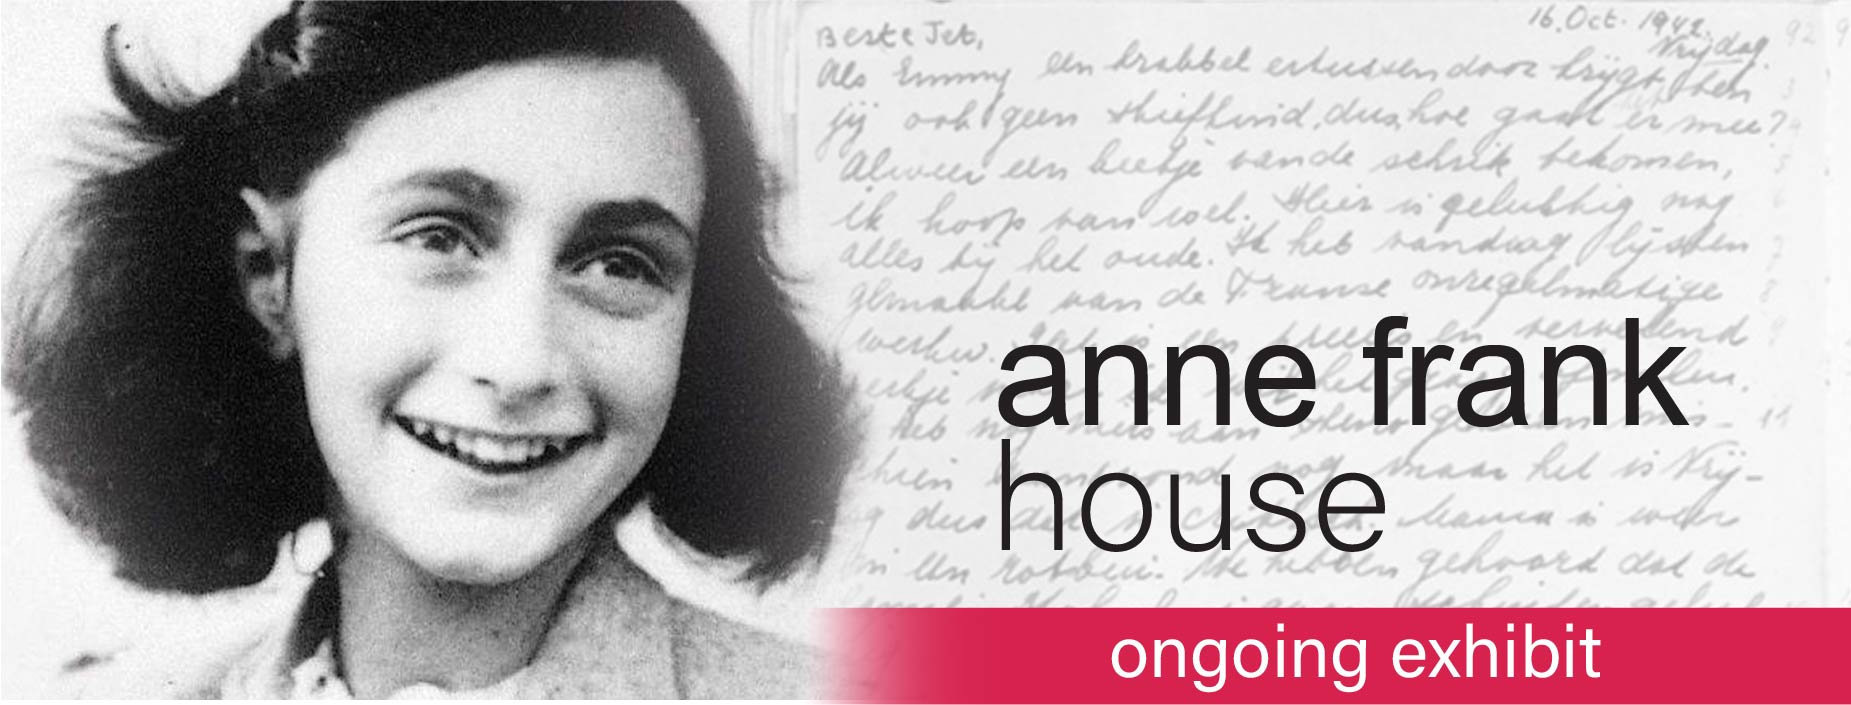 Banner Image for the Anne Frank House event